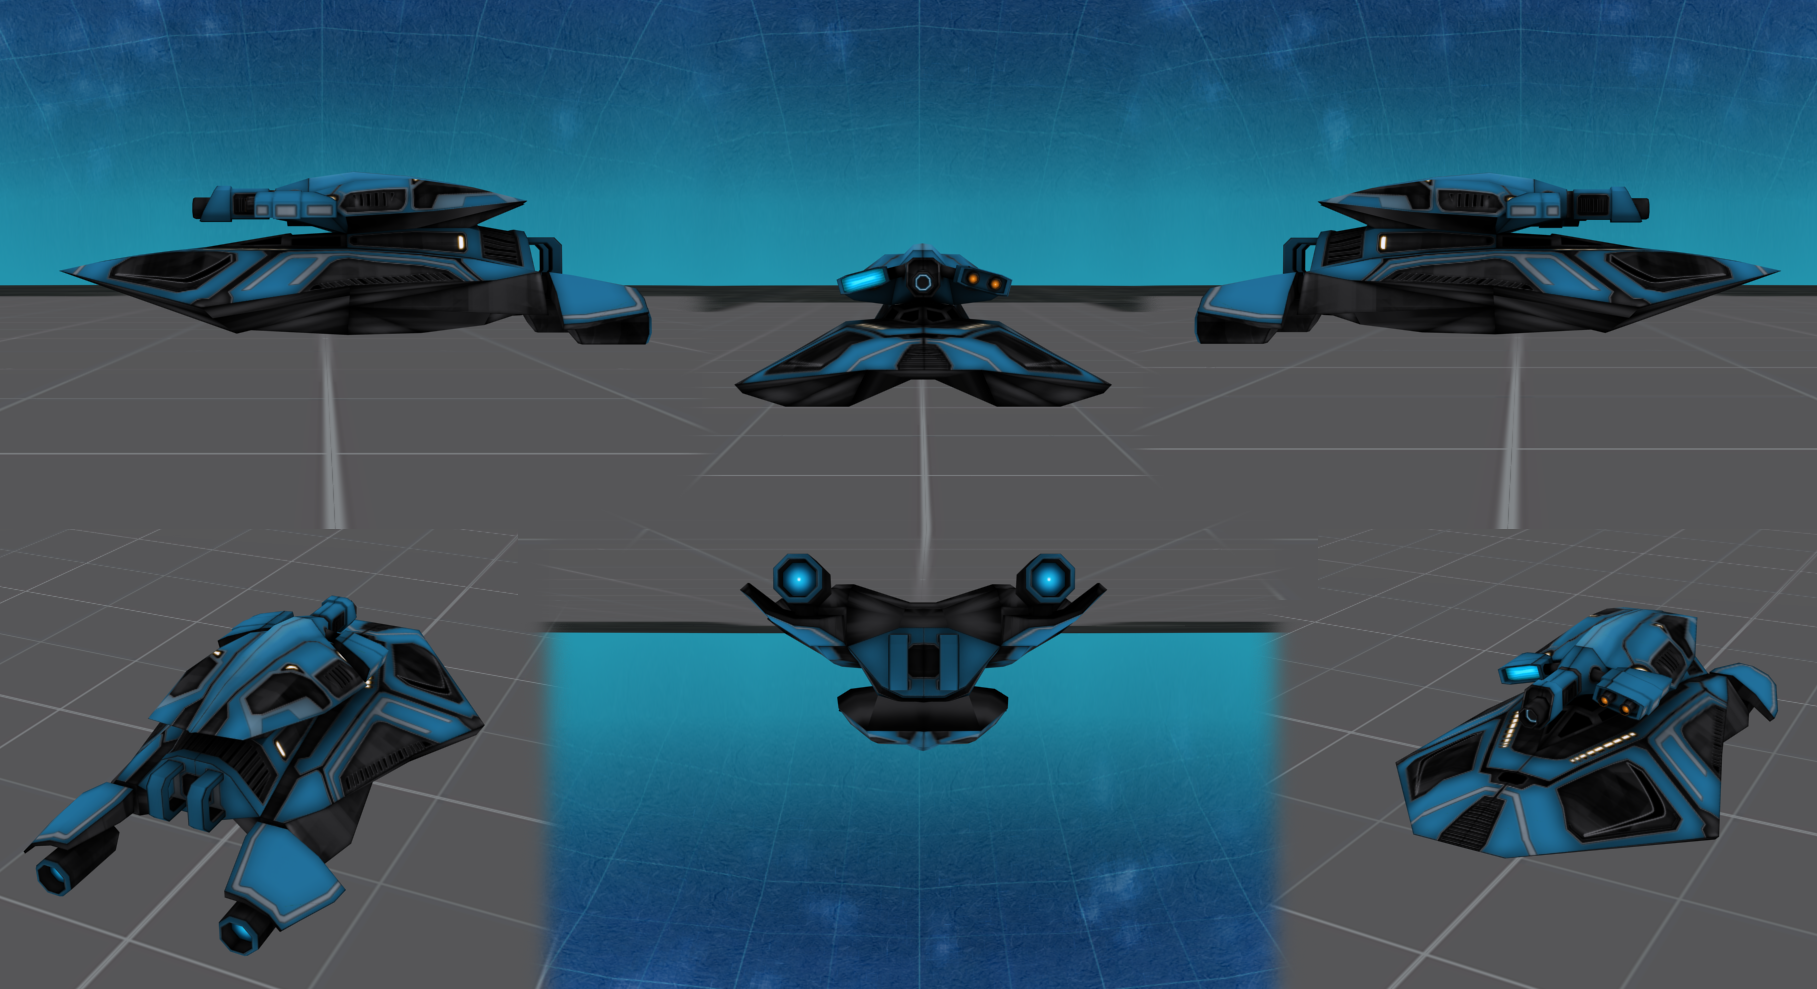 Aed utility sabre image bz2 community project 2 mod for for Battlezone 2